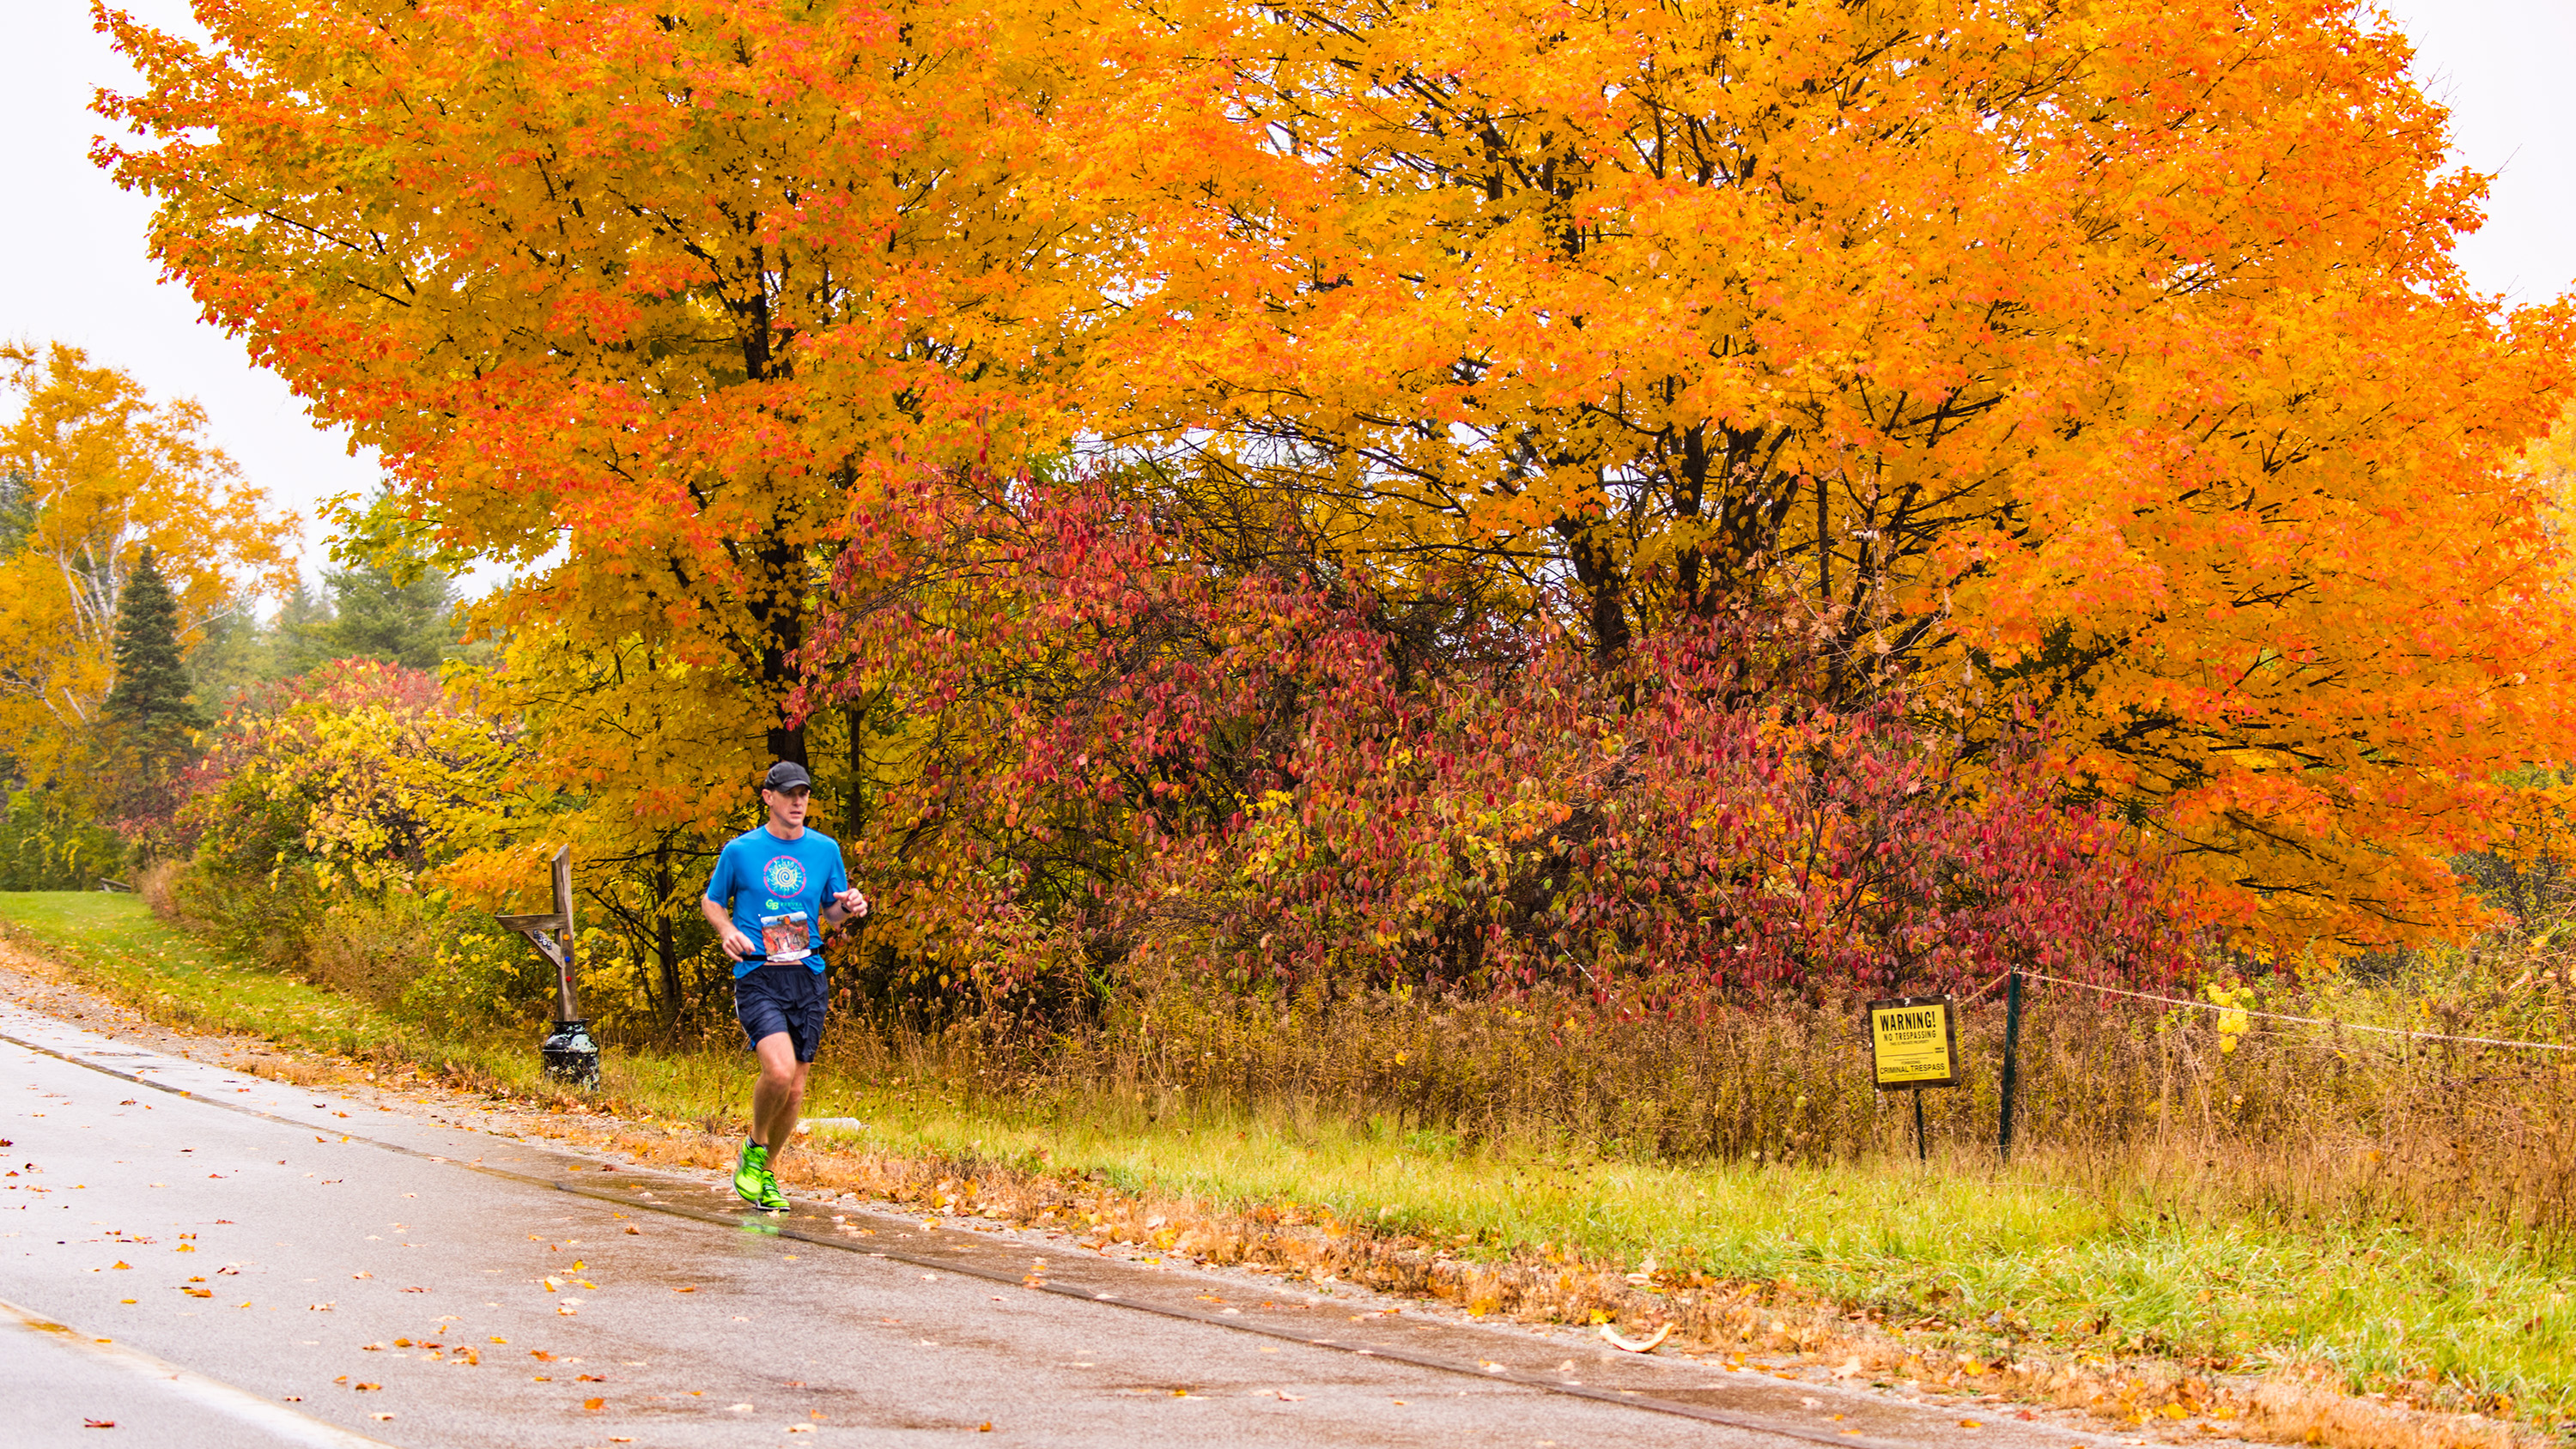 A point-to-point 50-mile run that offers a challenge to solo or run in teams of 2-5 which showcases the western shoreline of Door County during peak fall ... & Door County Events Calendar - Door County Pulse